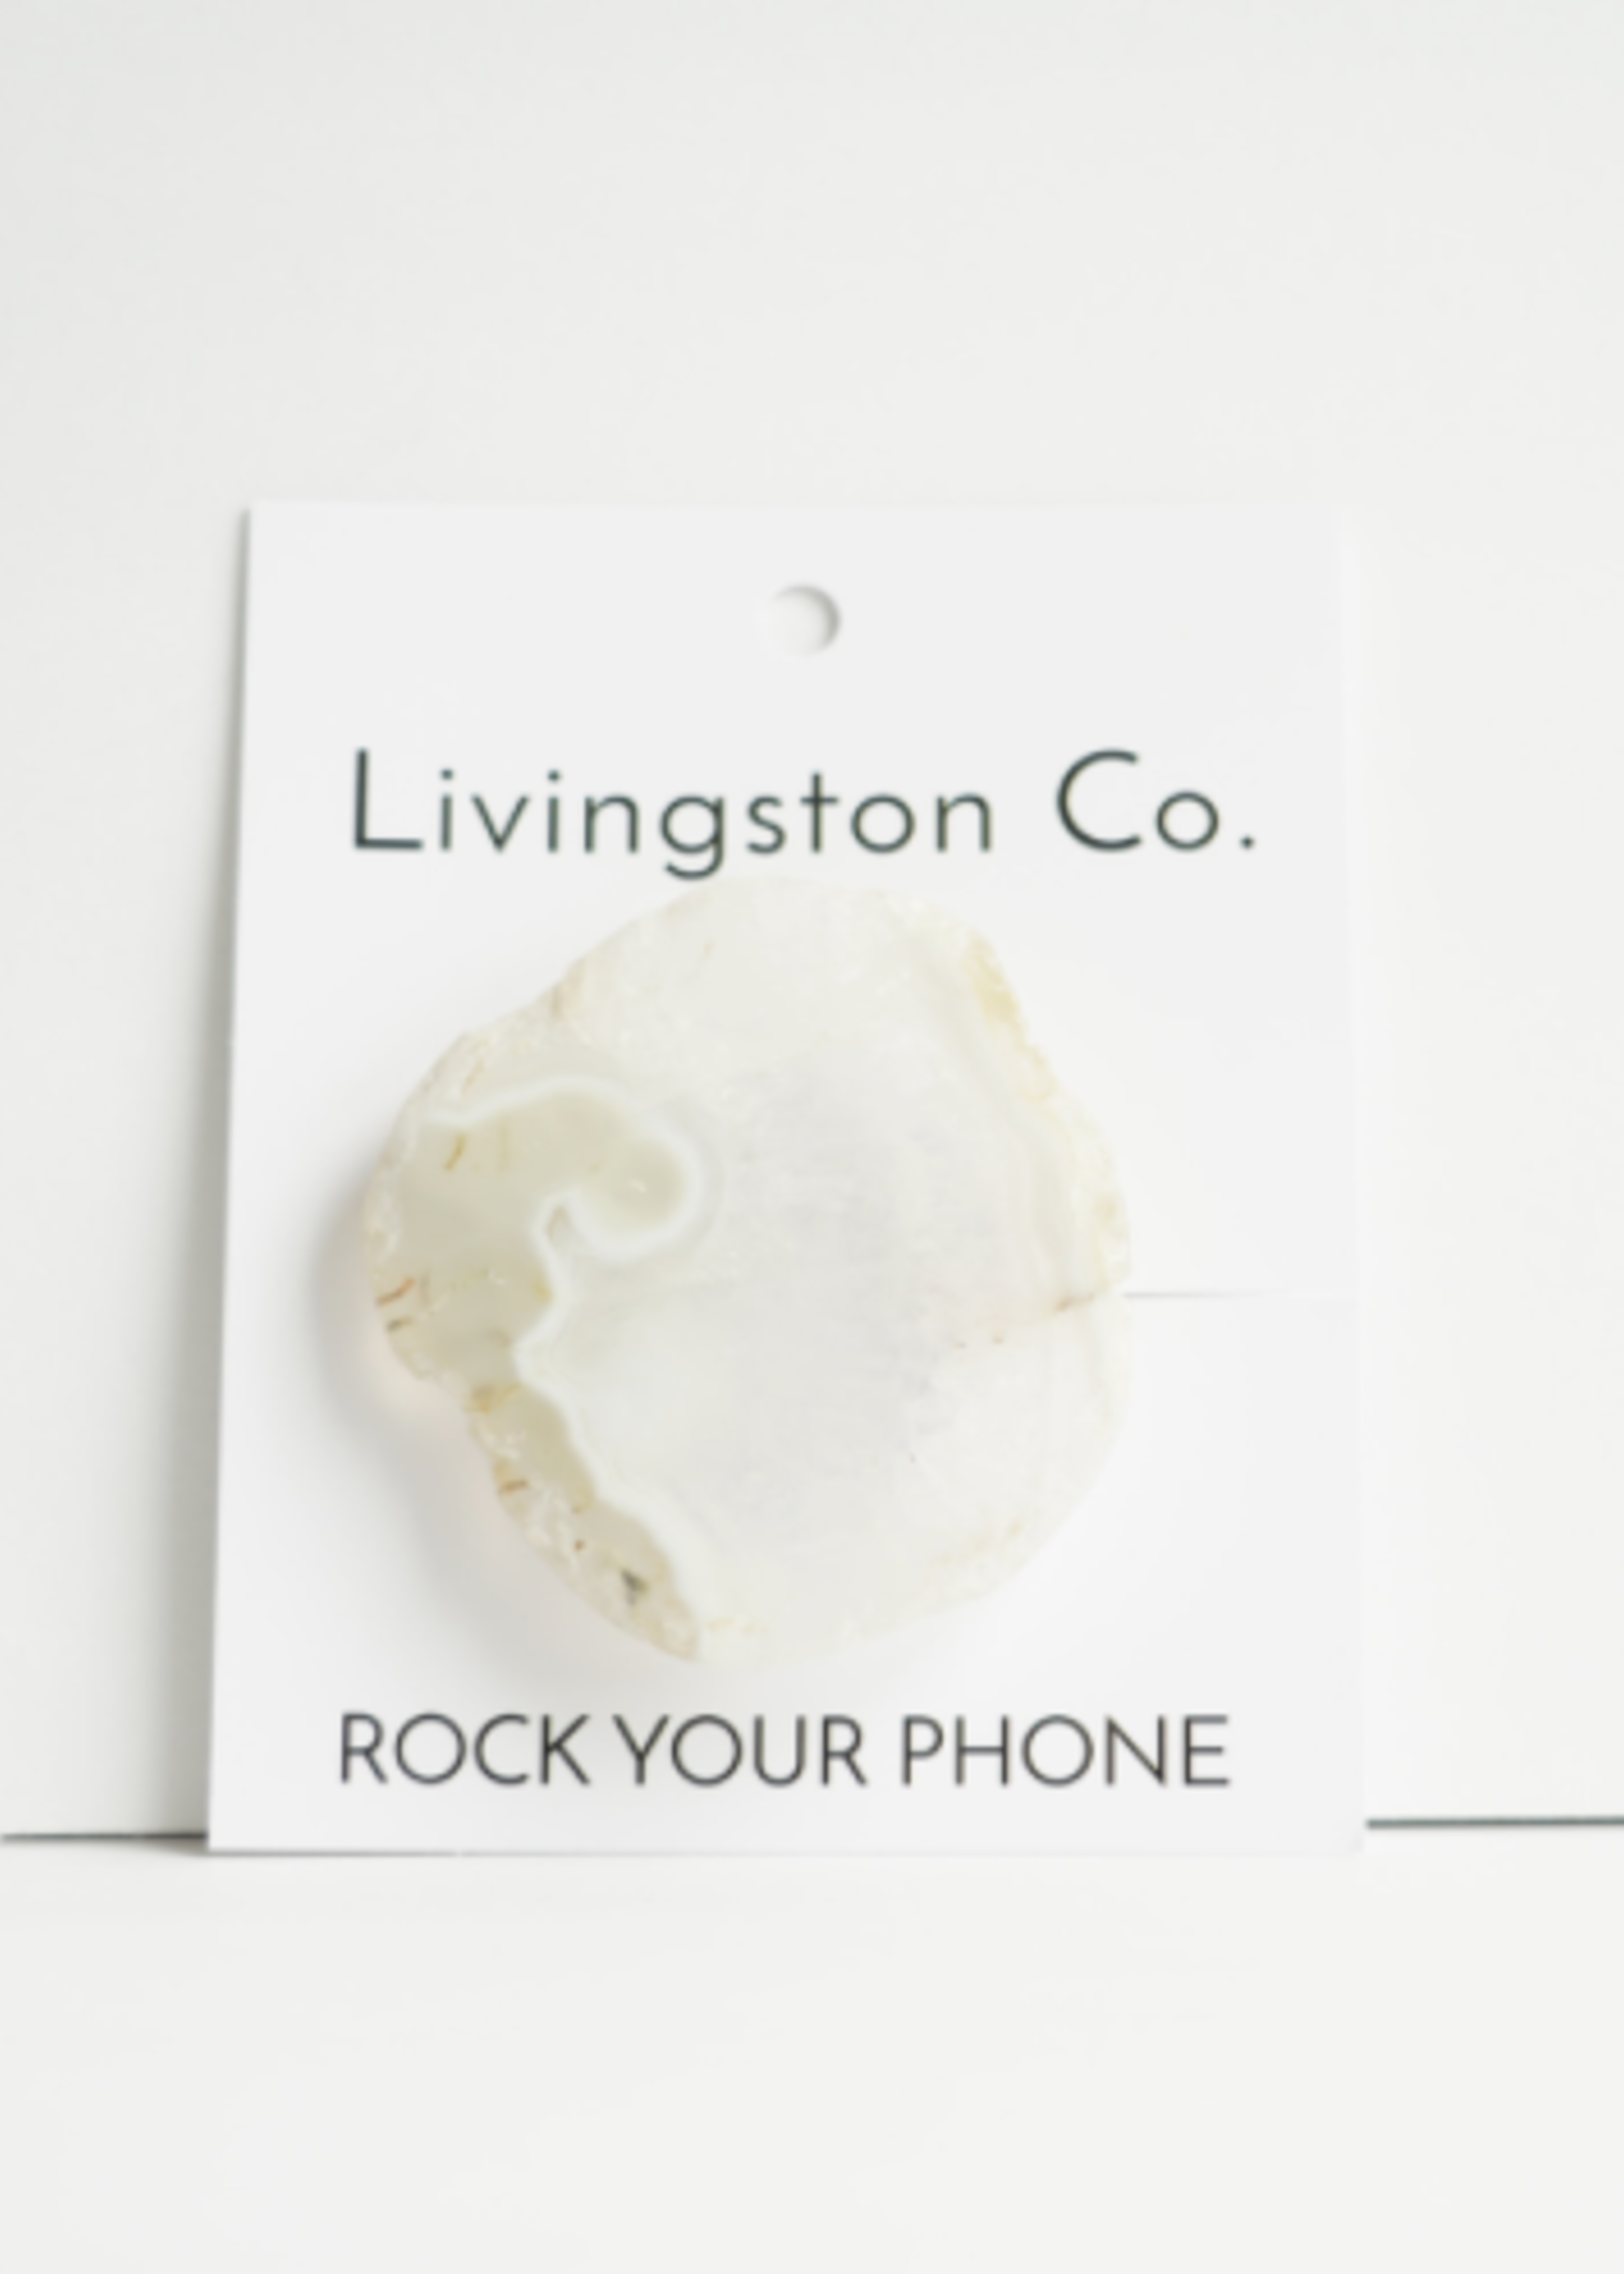 ROCK YOUR PHONE ROCK YOUR PHONE POLISHED EDGE